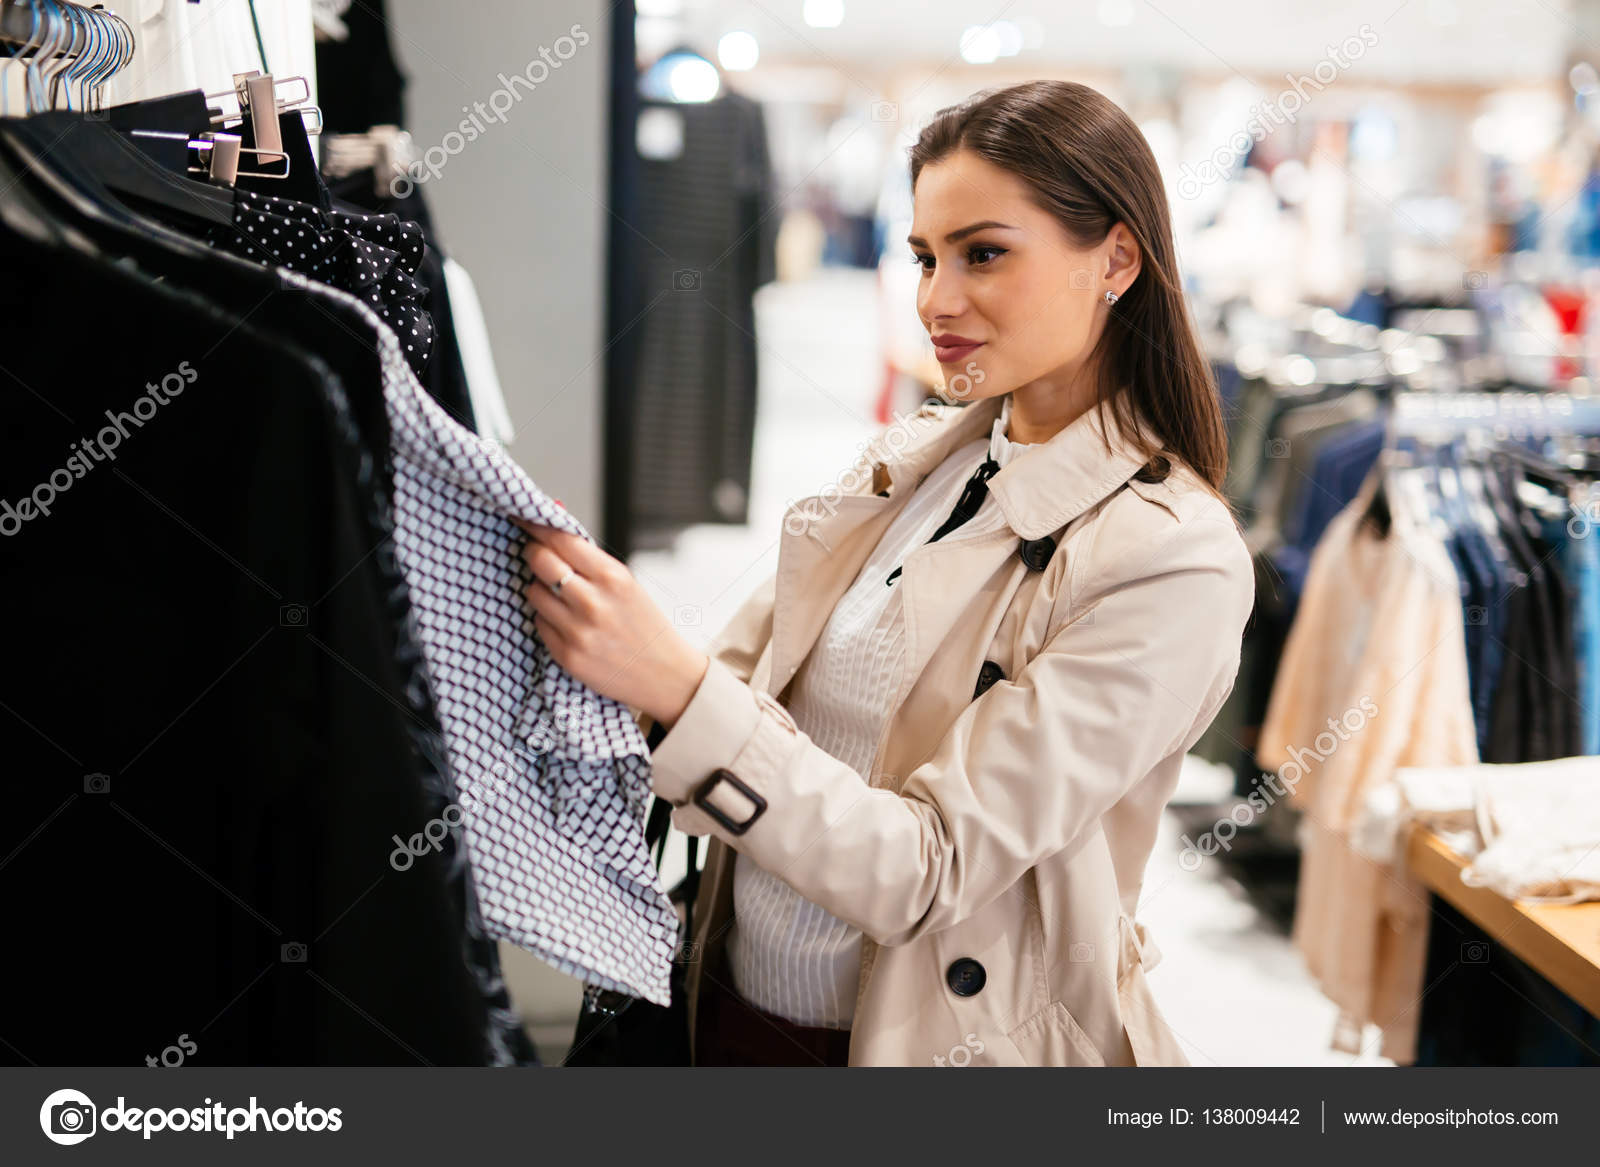 d305cdc0a89c Hermosa mujer compra ropa — Foto de stock © nd3000 #138009442